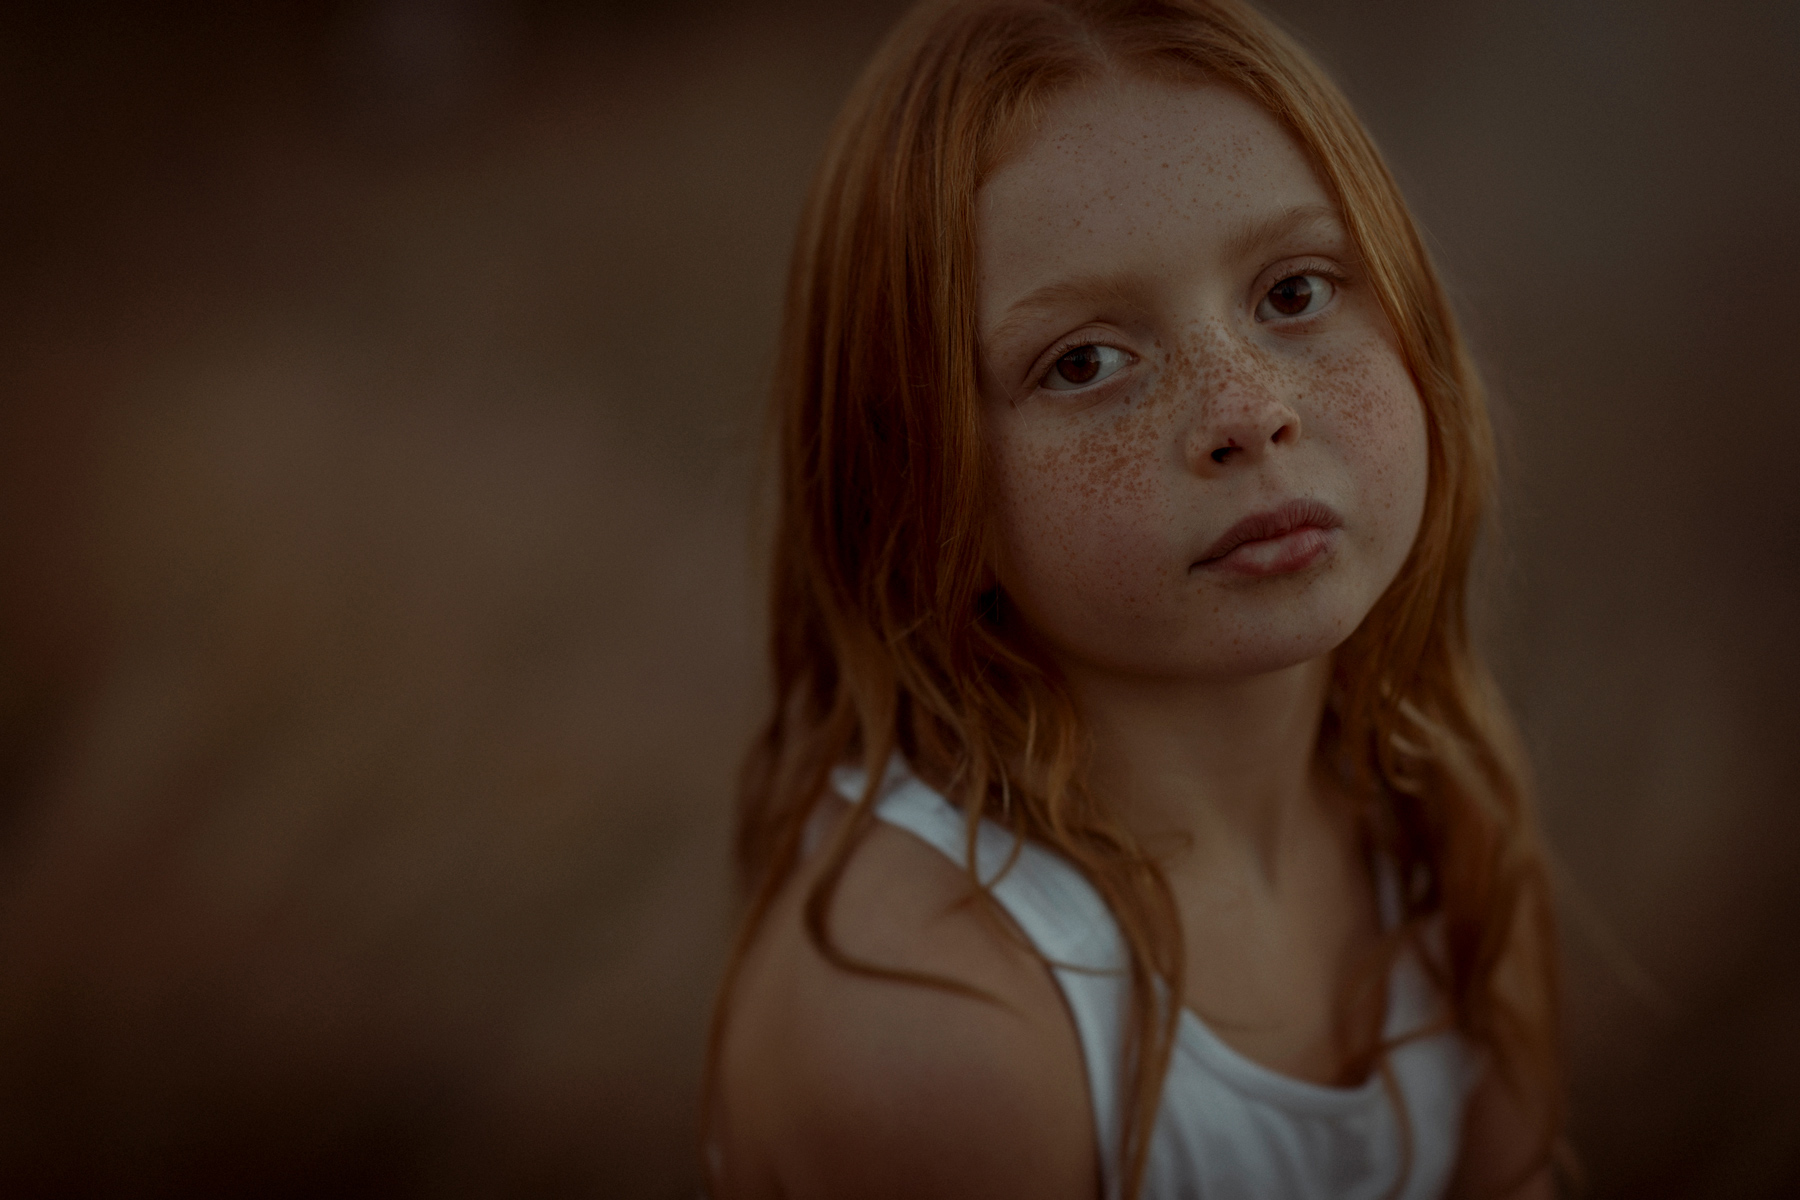 freckled girl portrait